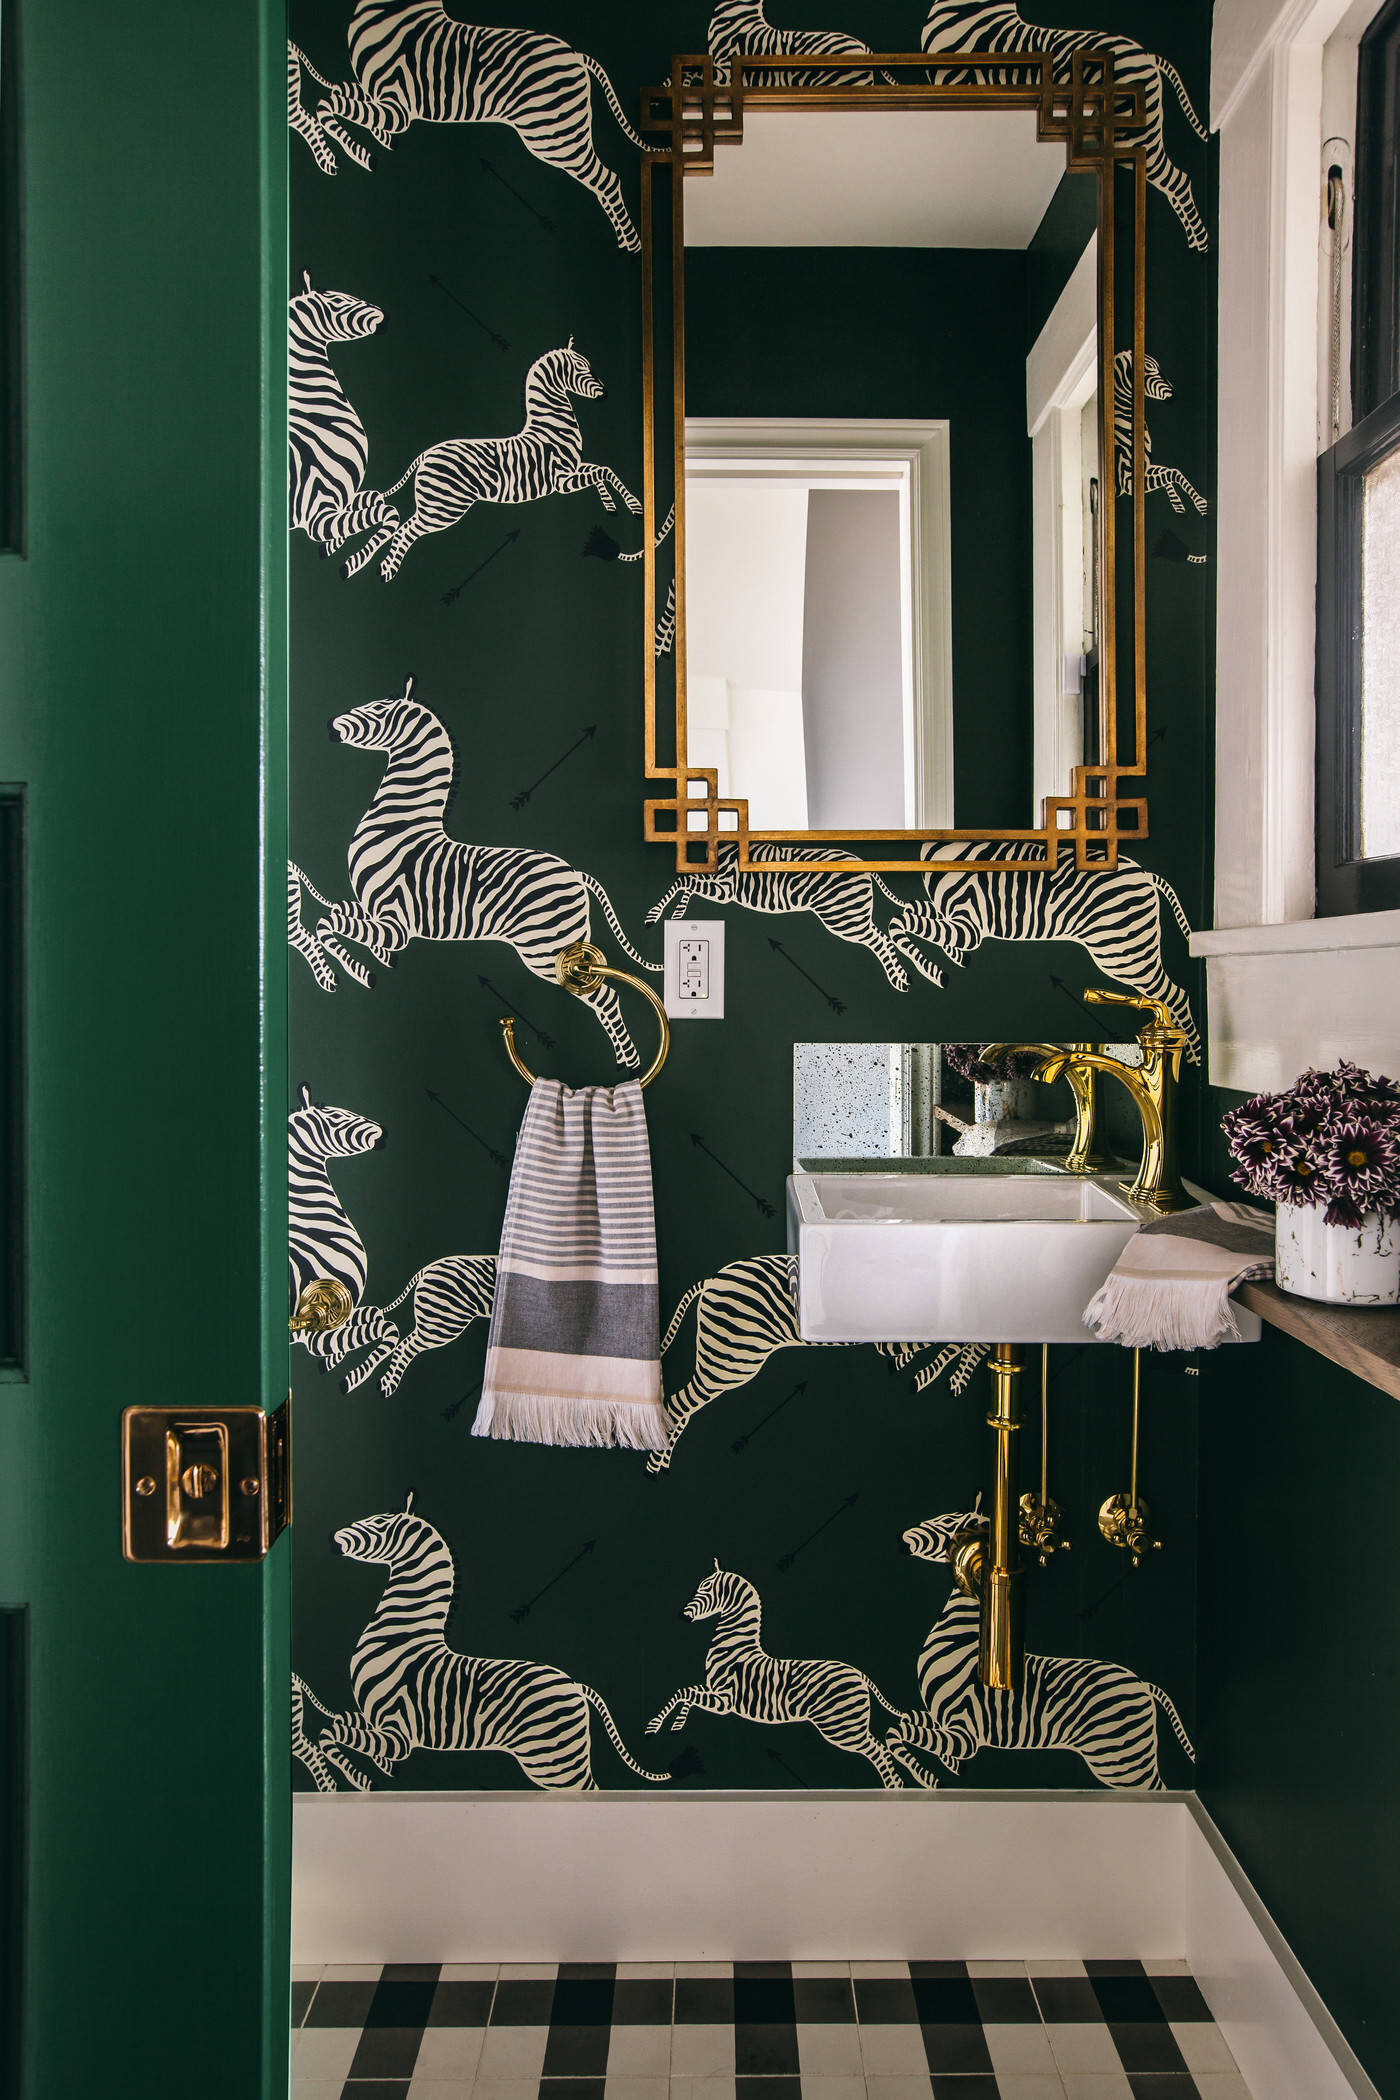 Low On Space But High Style 20 Super Tiny Powder Rooms With Incredible Design Dlghtd